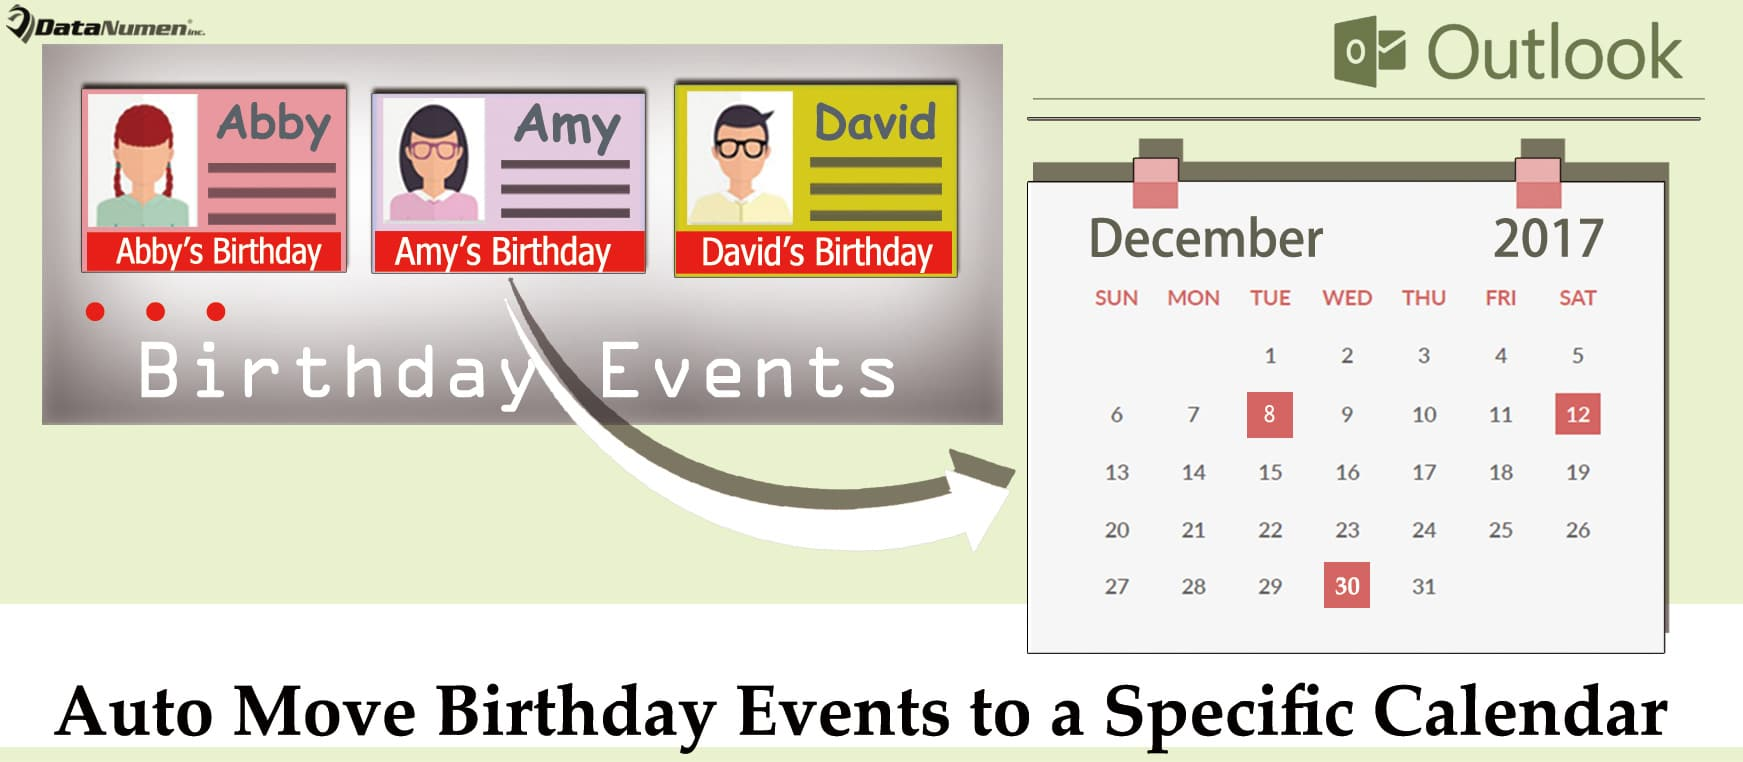 How To Auto Move Birthday Events To A Specific Calendar In Your